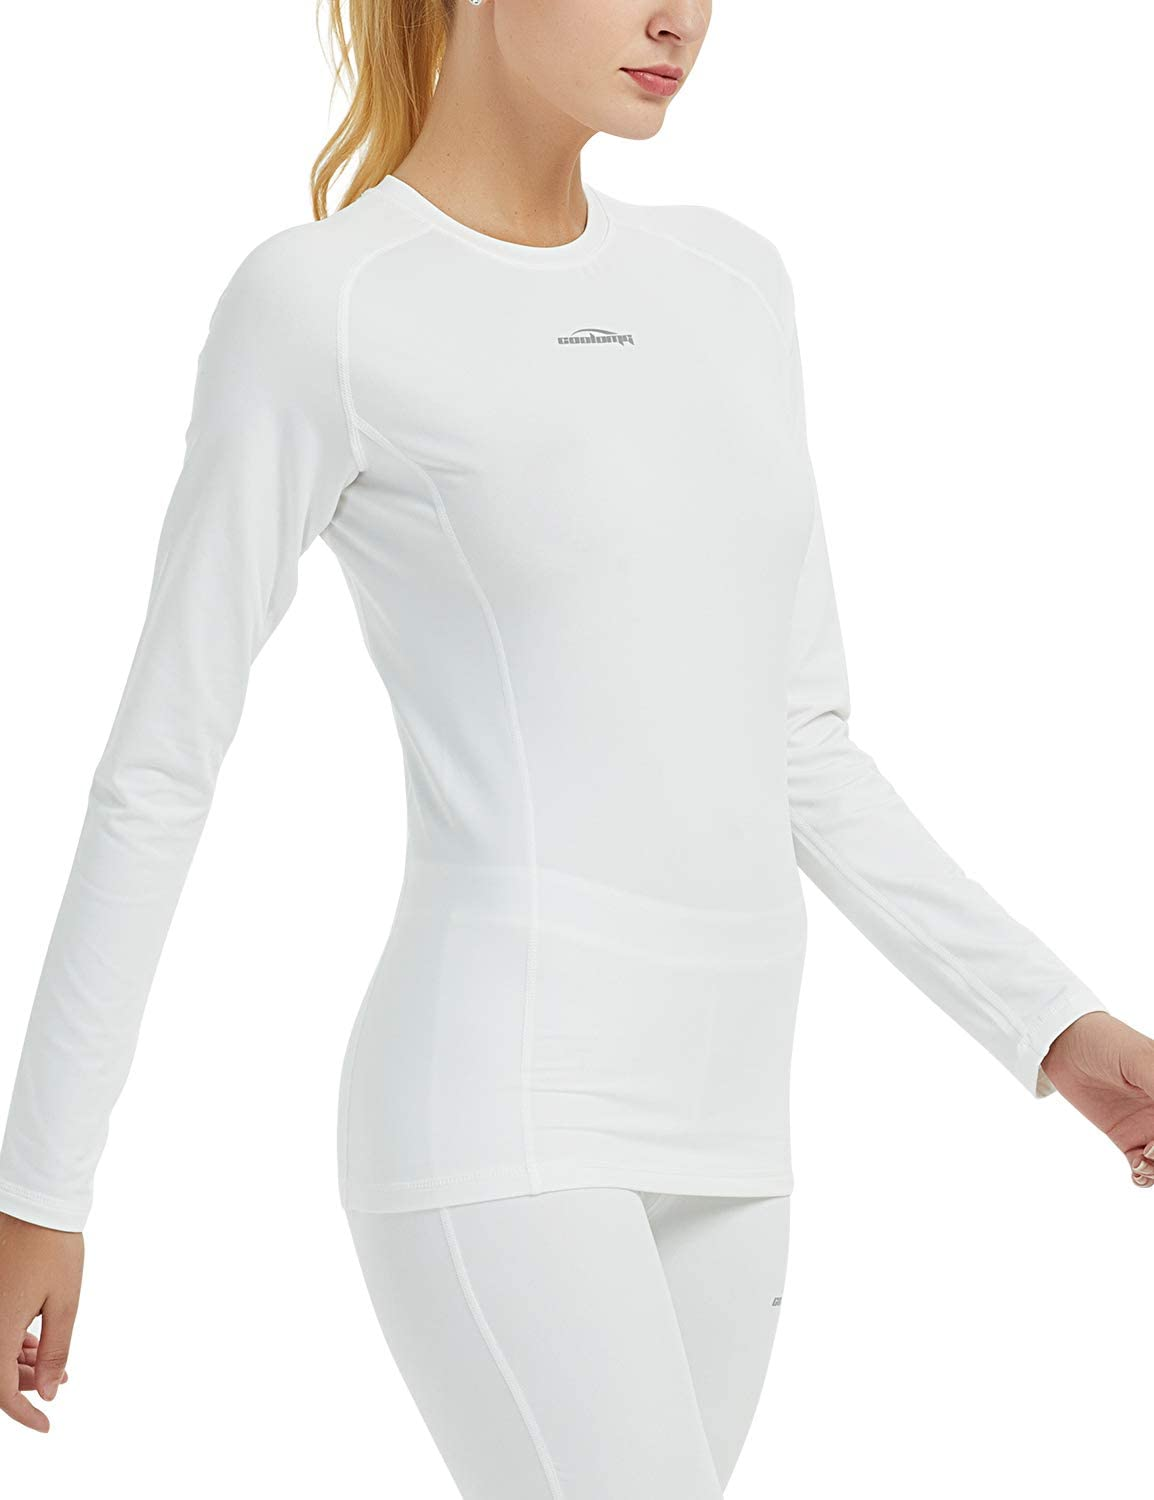 COOLOMG Damen Kompressionsshirt Langarm Funktionsw/äsche Base Layer Winter Thermow/äsche Sport Joggen